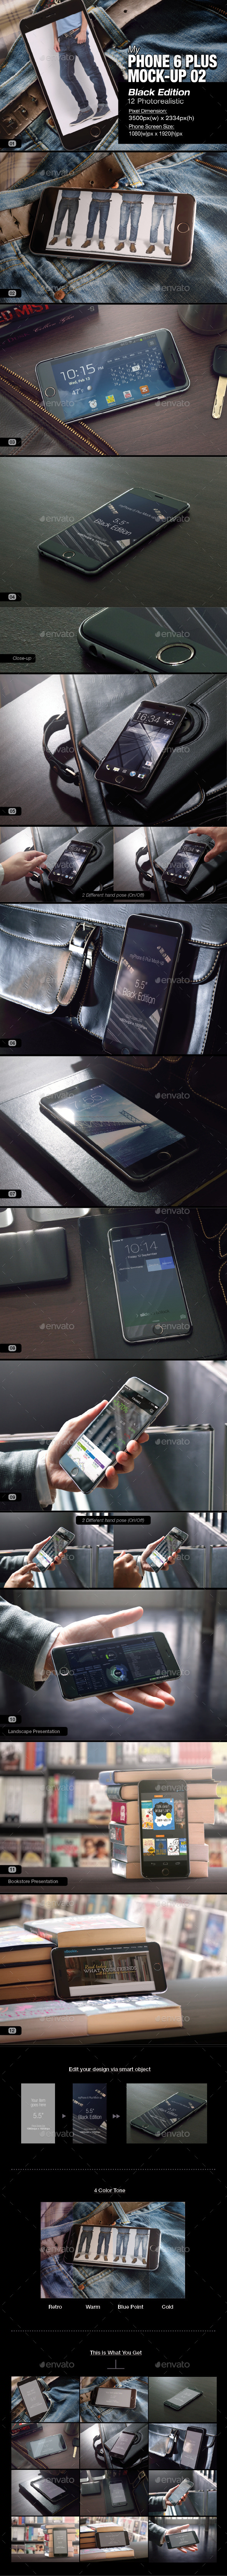 myPhone 6 Plus Mock-up 02 - Mobile Displays